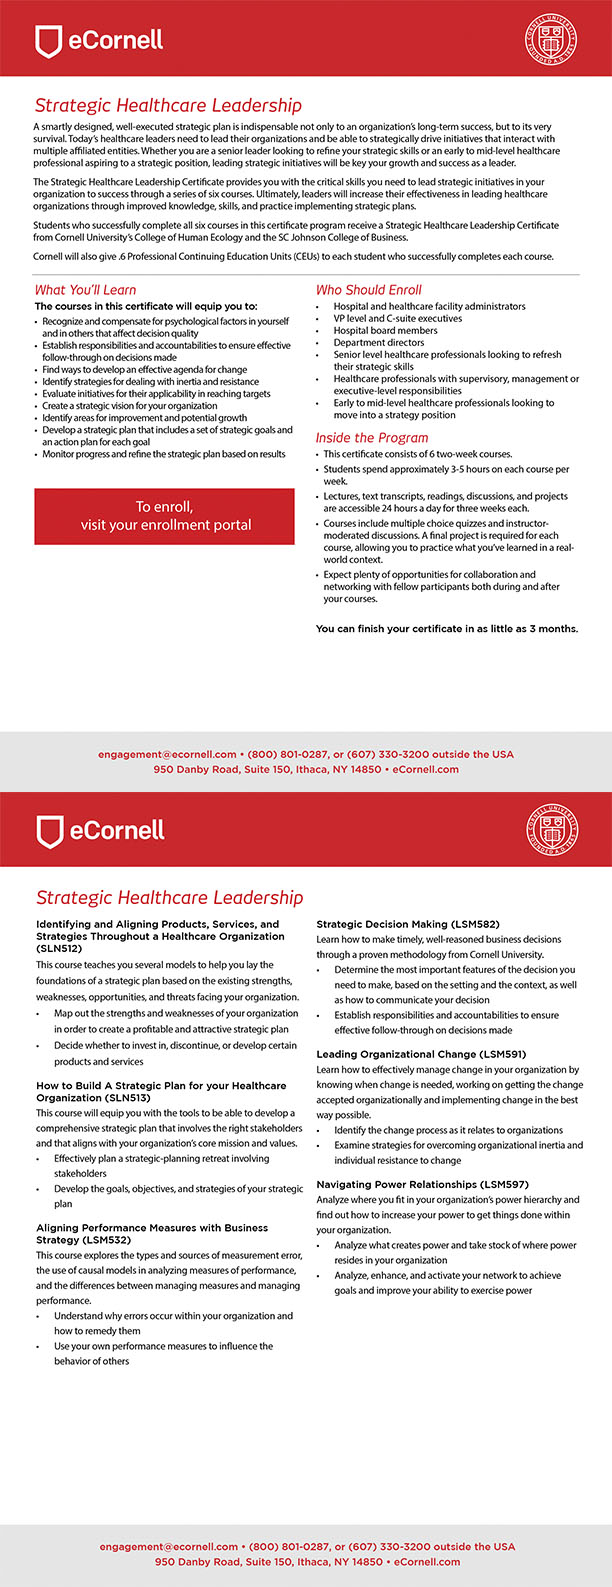 Strategic Healthcare Leadership Flyer for Corporations